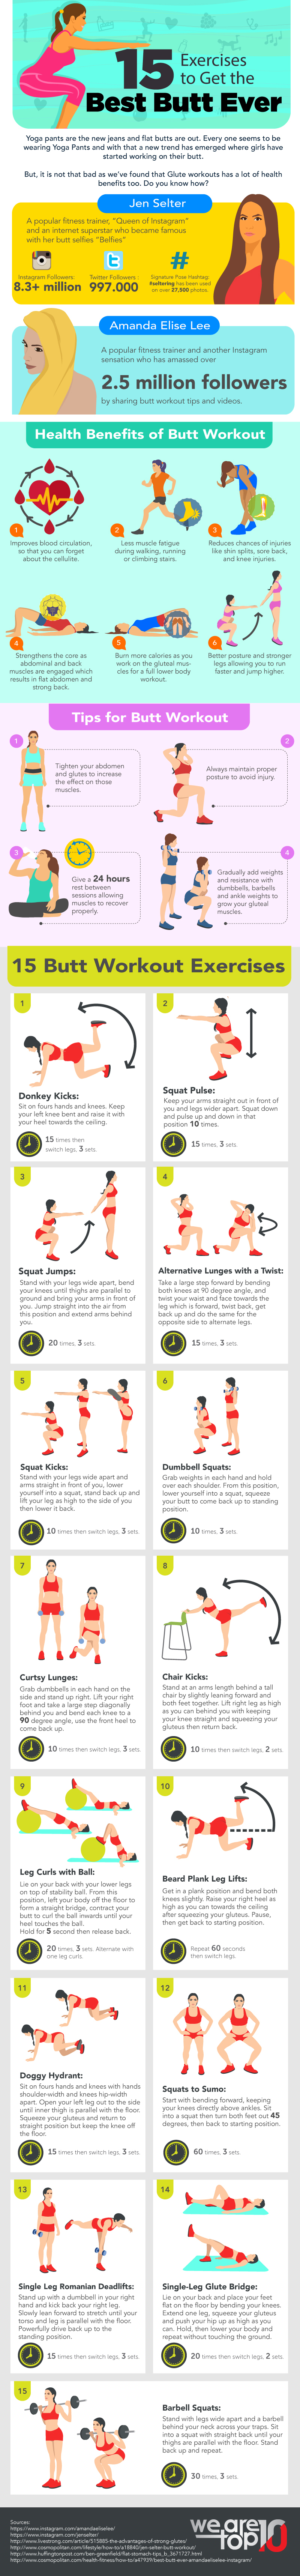 15 Exercises to Get the Best Butt Ever infographic